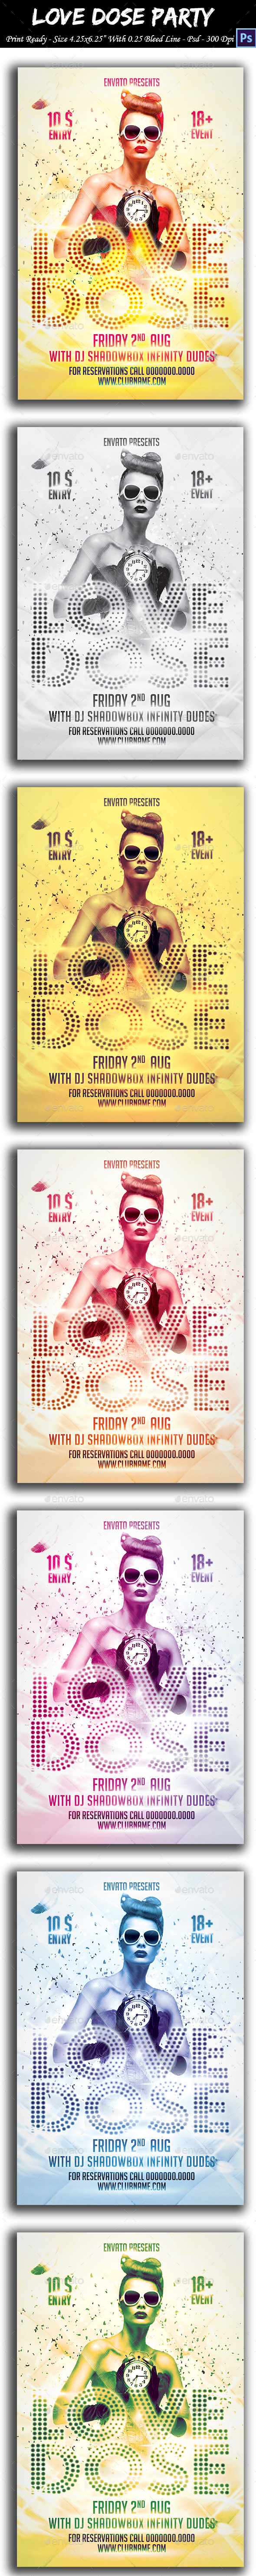 GraphicRiver Love Dose Party Flyer 8866510